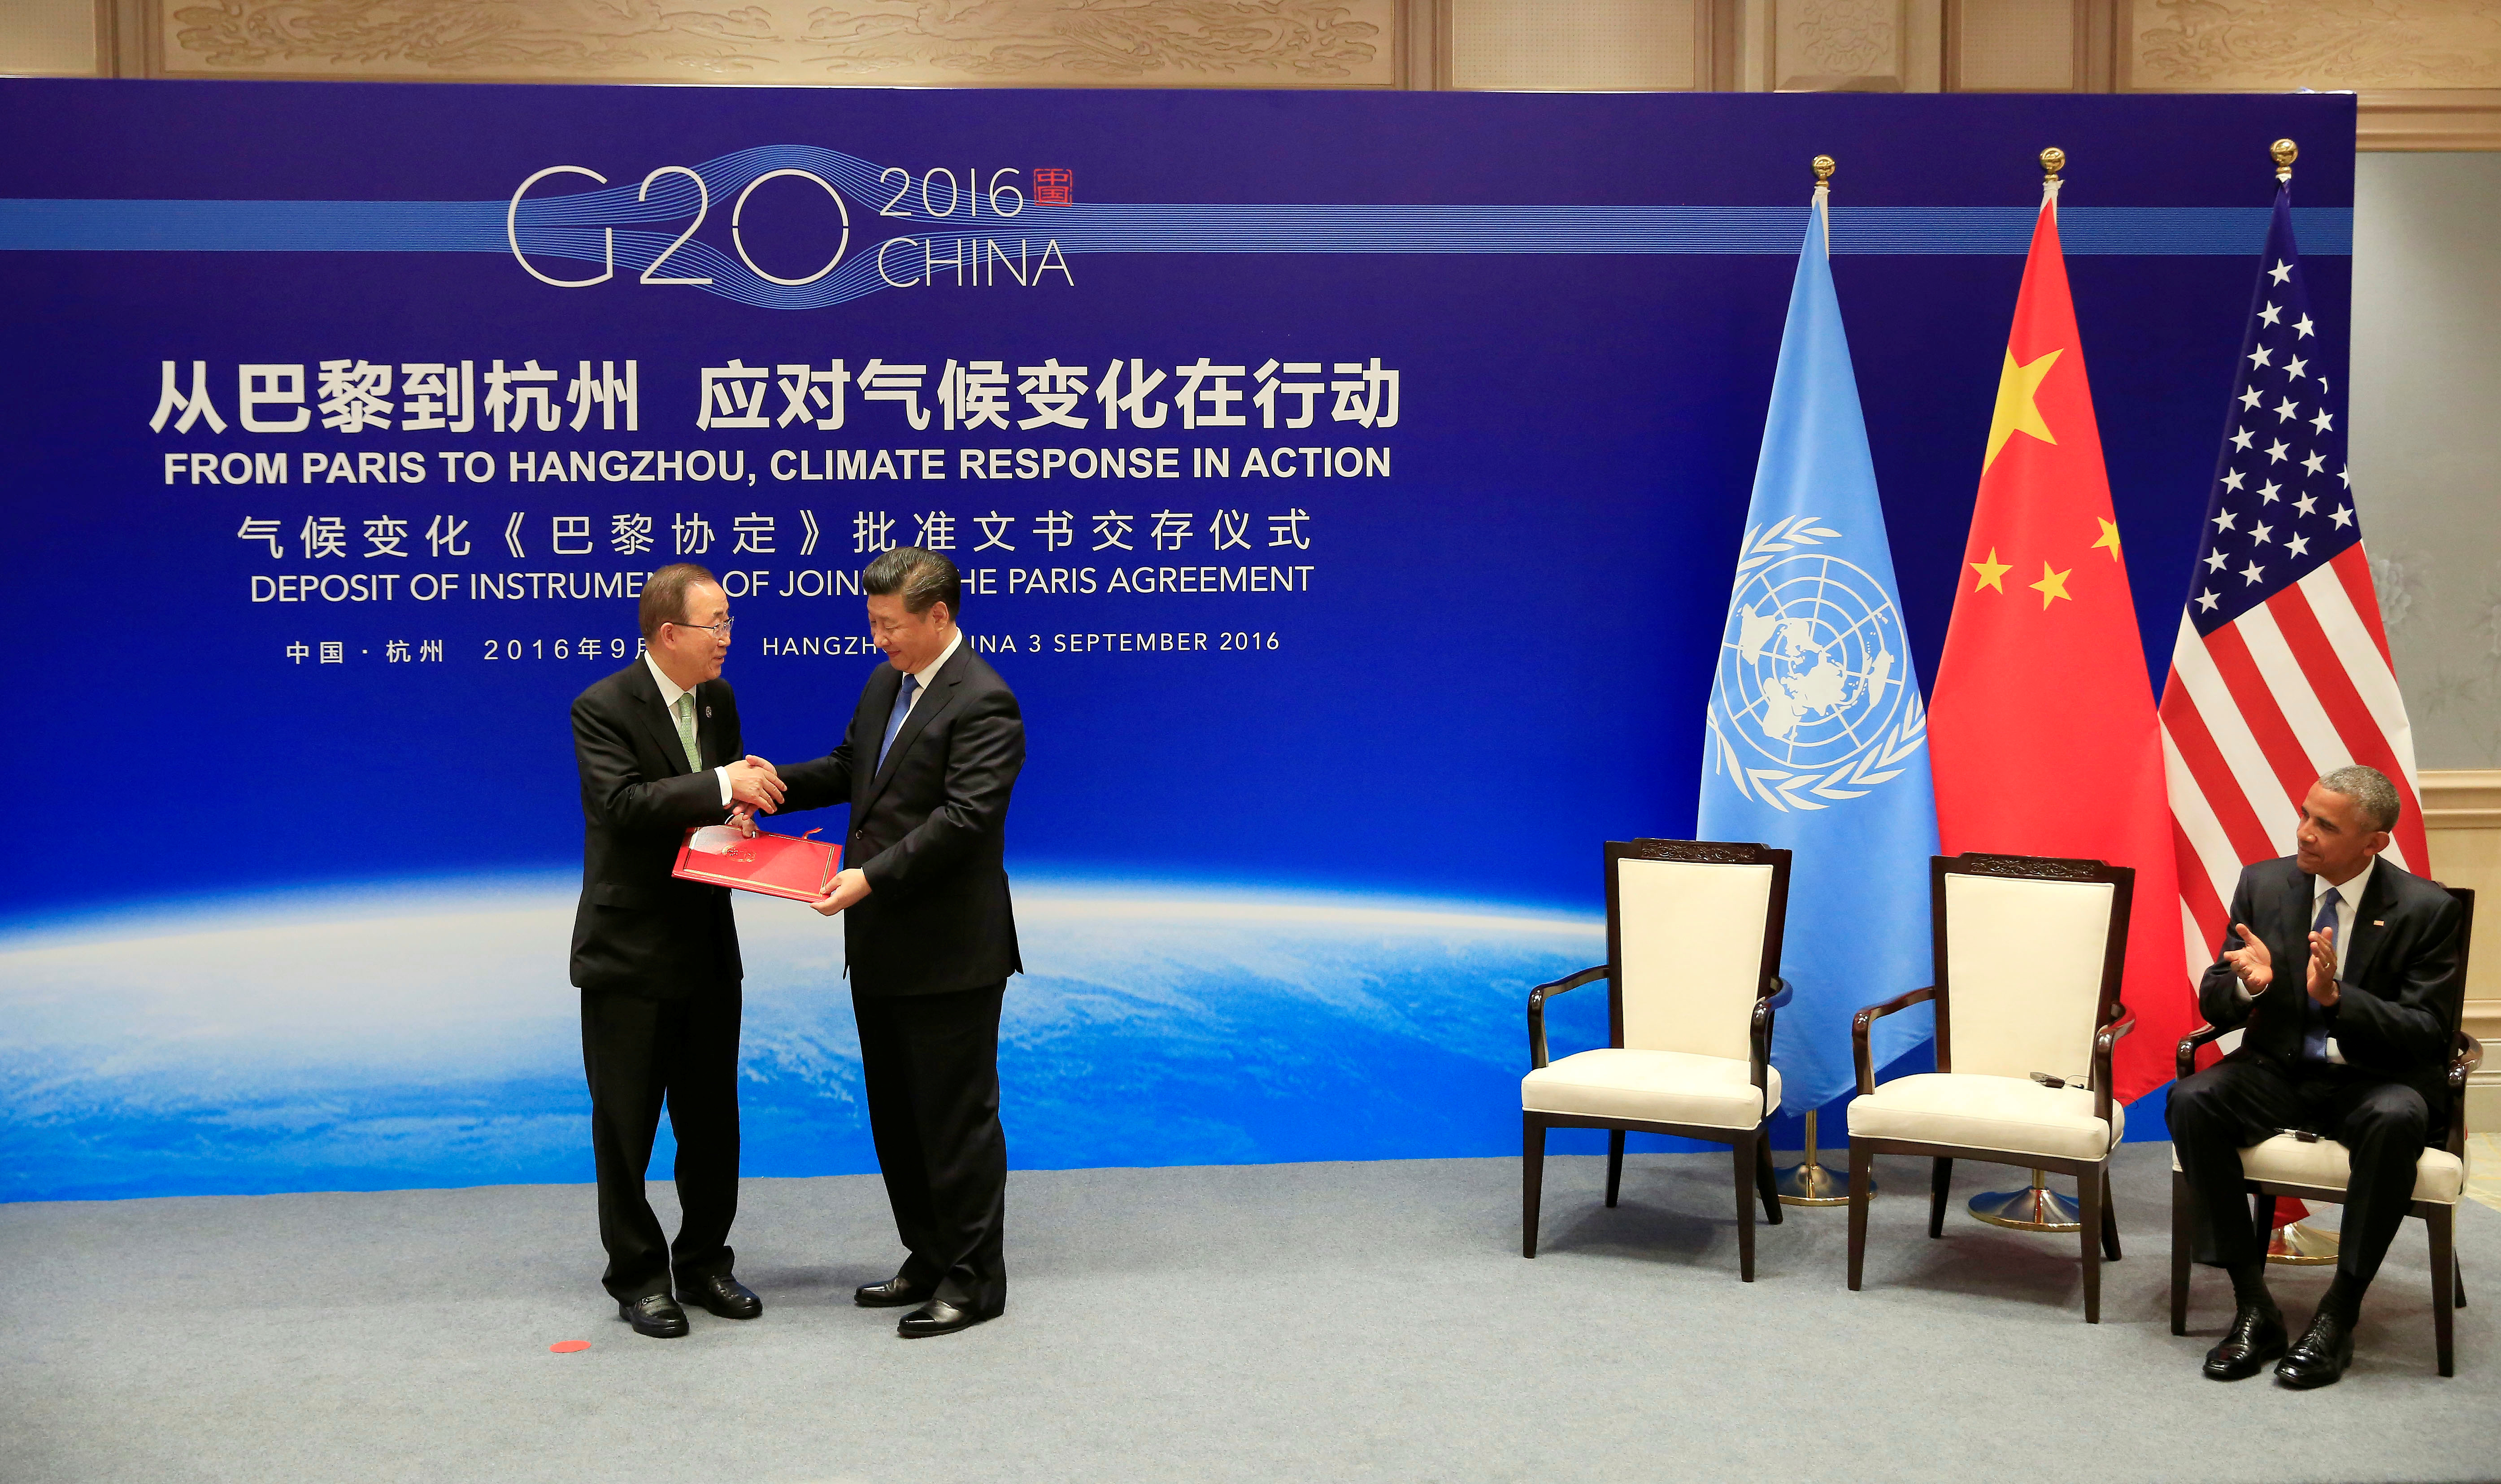 Is China A Part Of The Paris Agreement